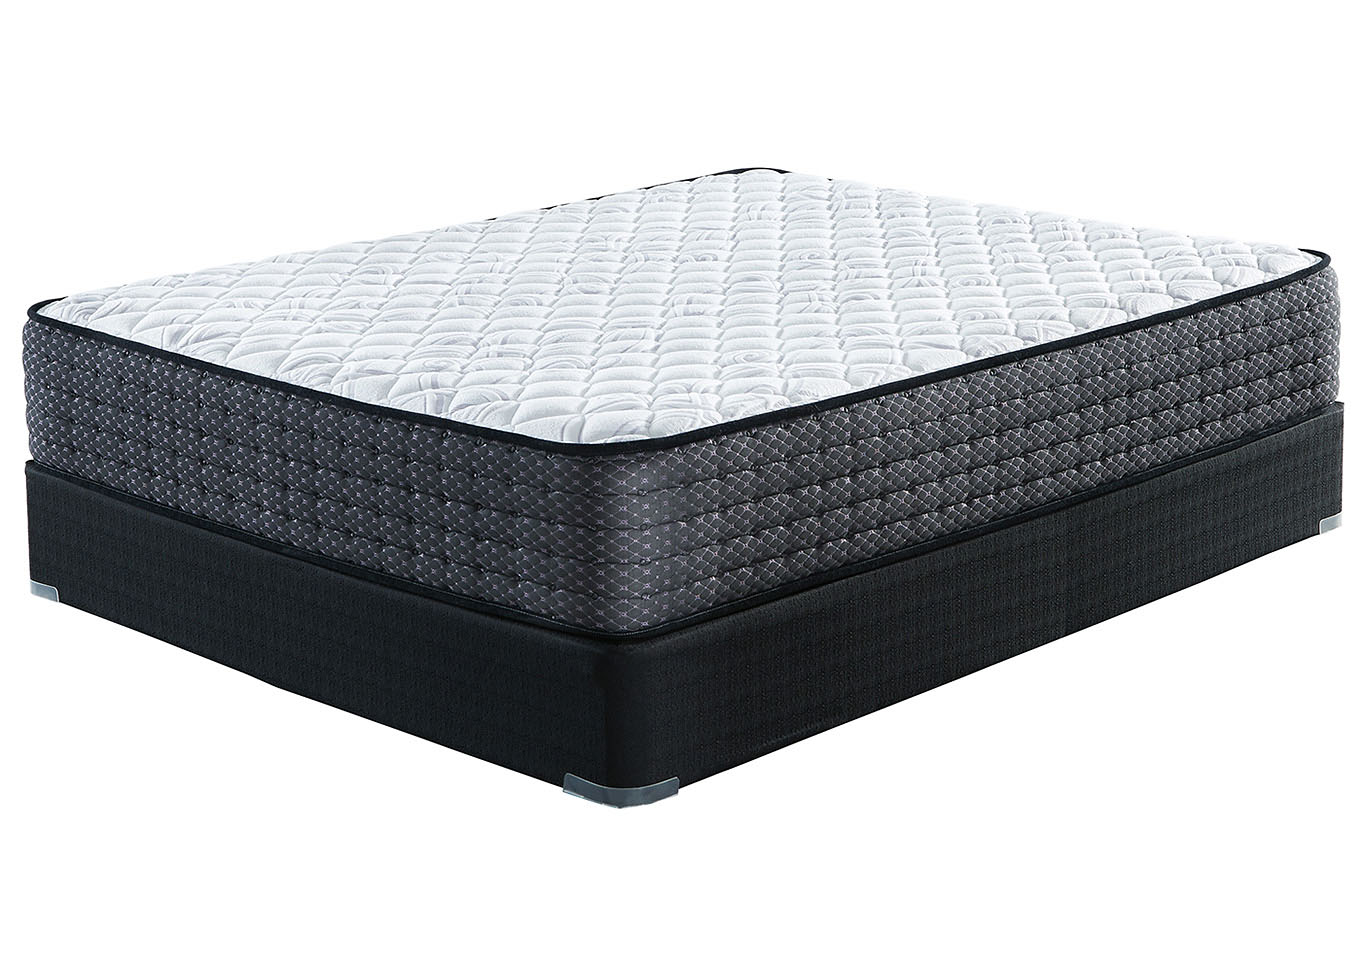 Limited Edition Firm Queen Mattress w/Foundation,Sierra Sleep by Ashley